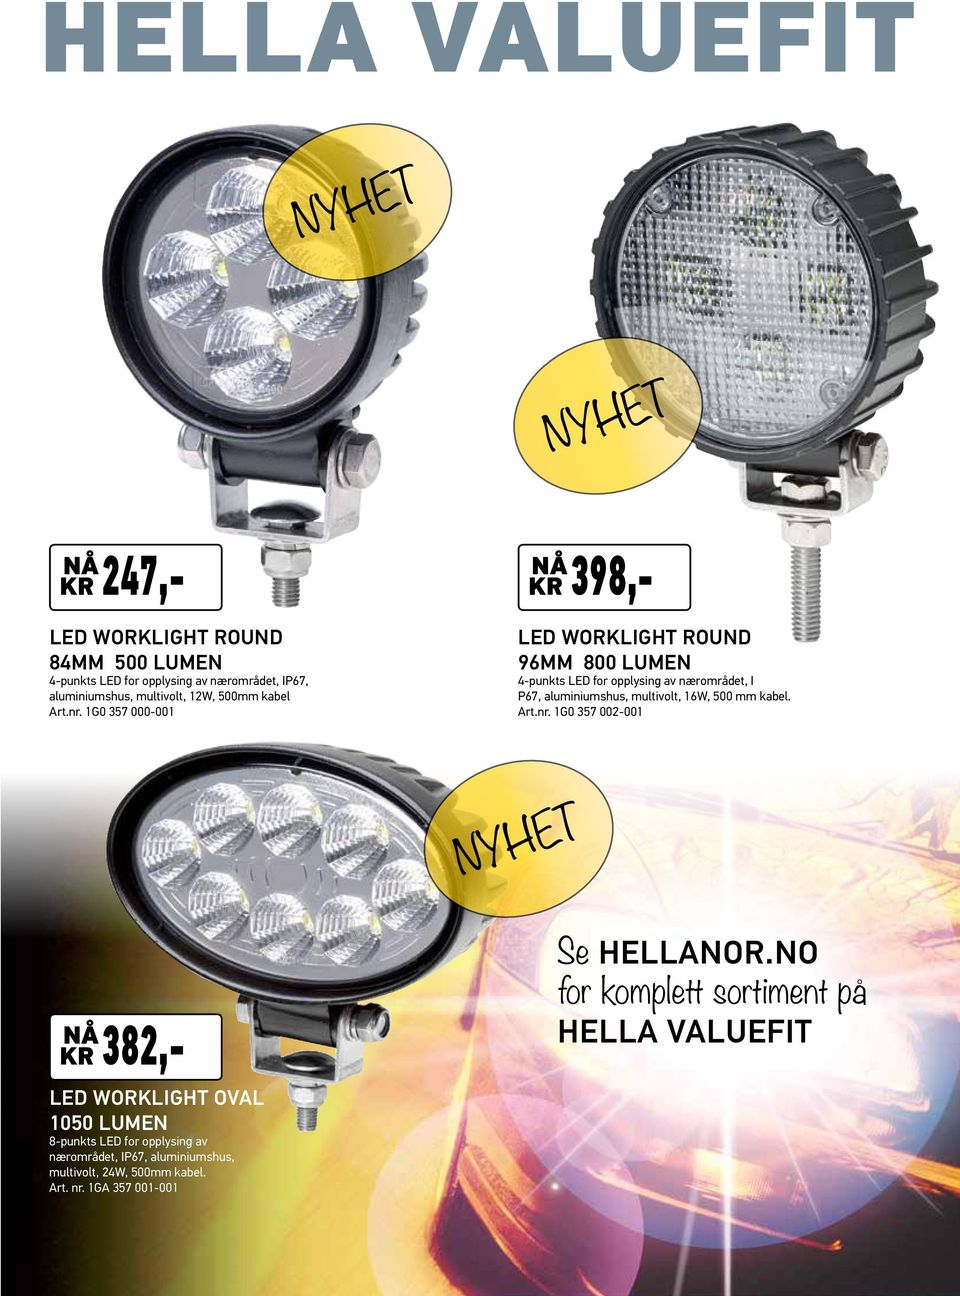 1G0 357 000-001 398,- LED worklight round 96mm 800 Lumen 4-punkts LED for opplysing av nærområdet, I P67, aluminiumshus, multivolt,